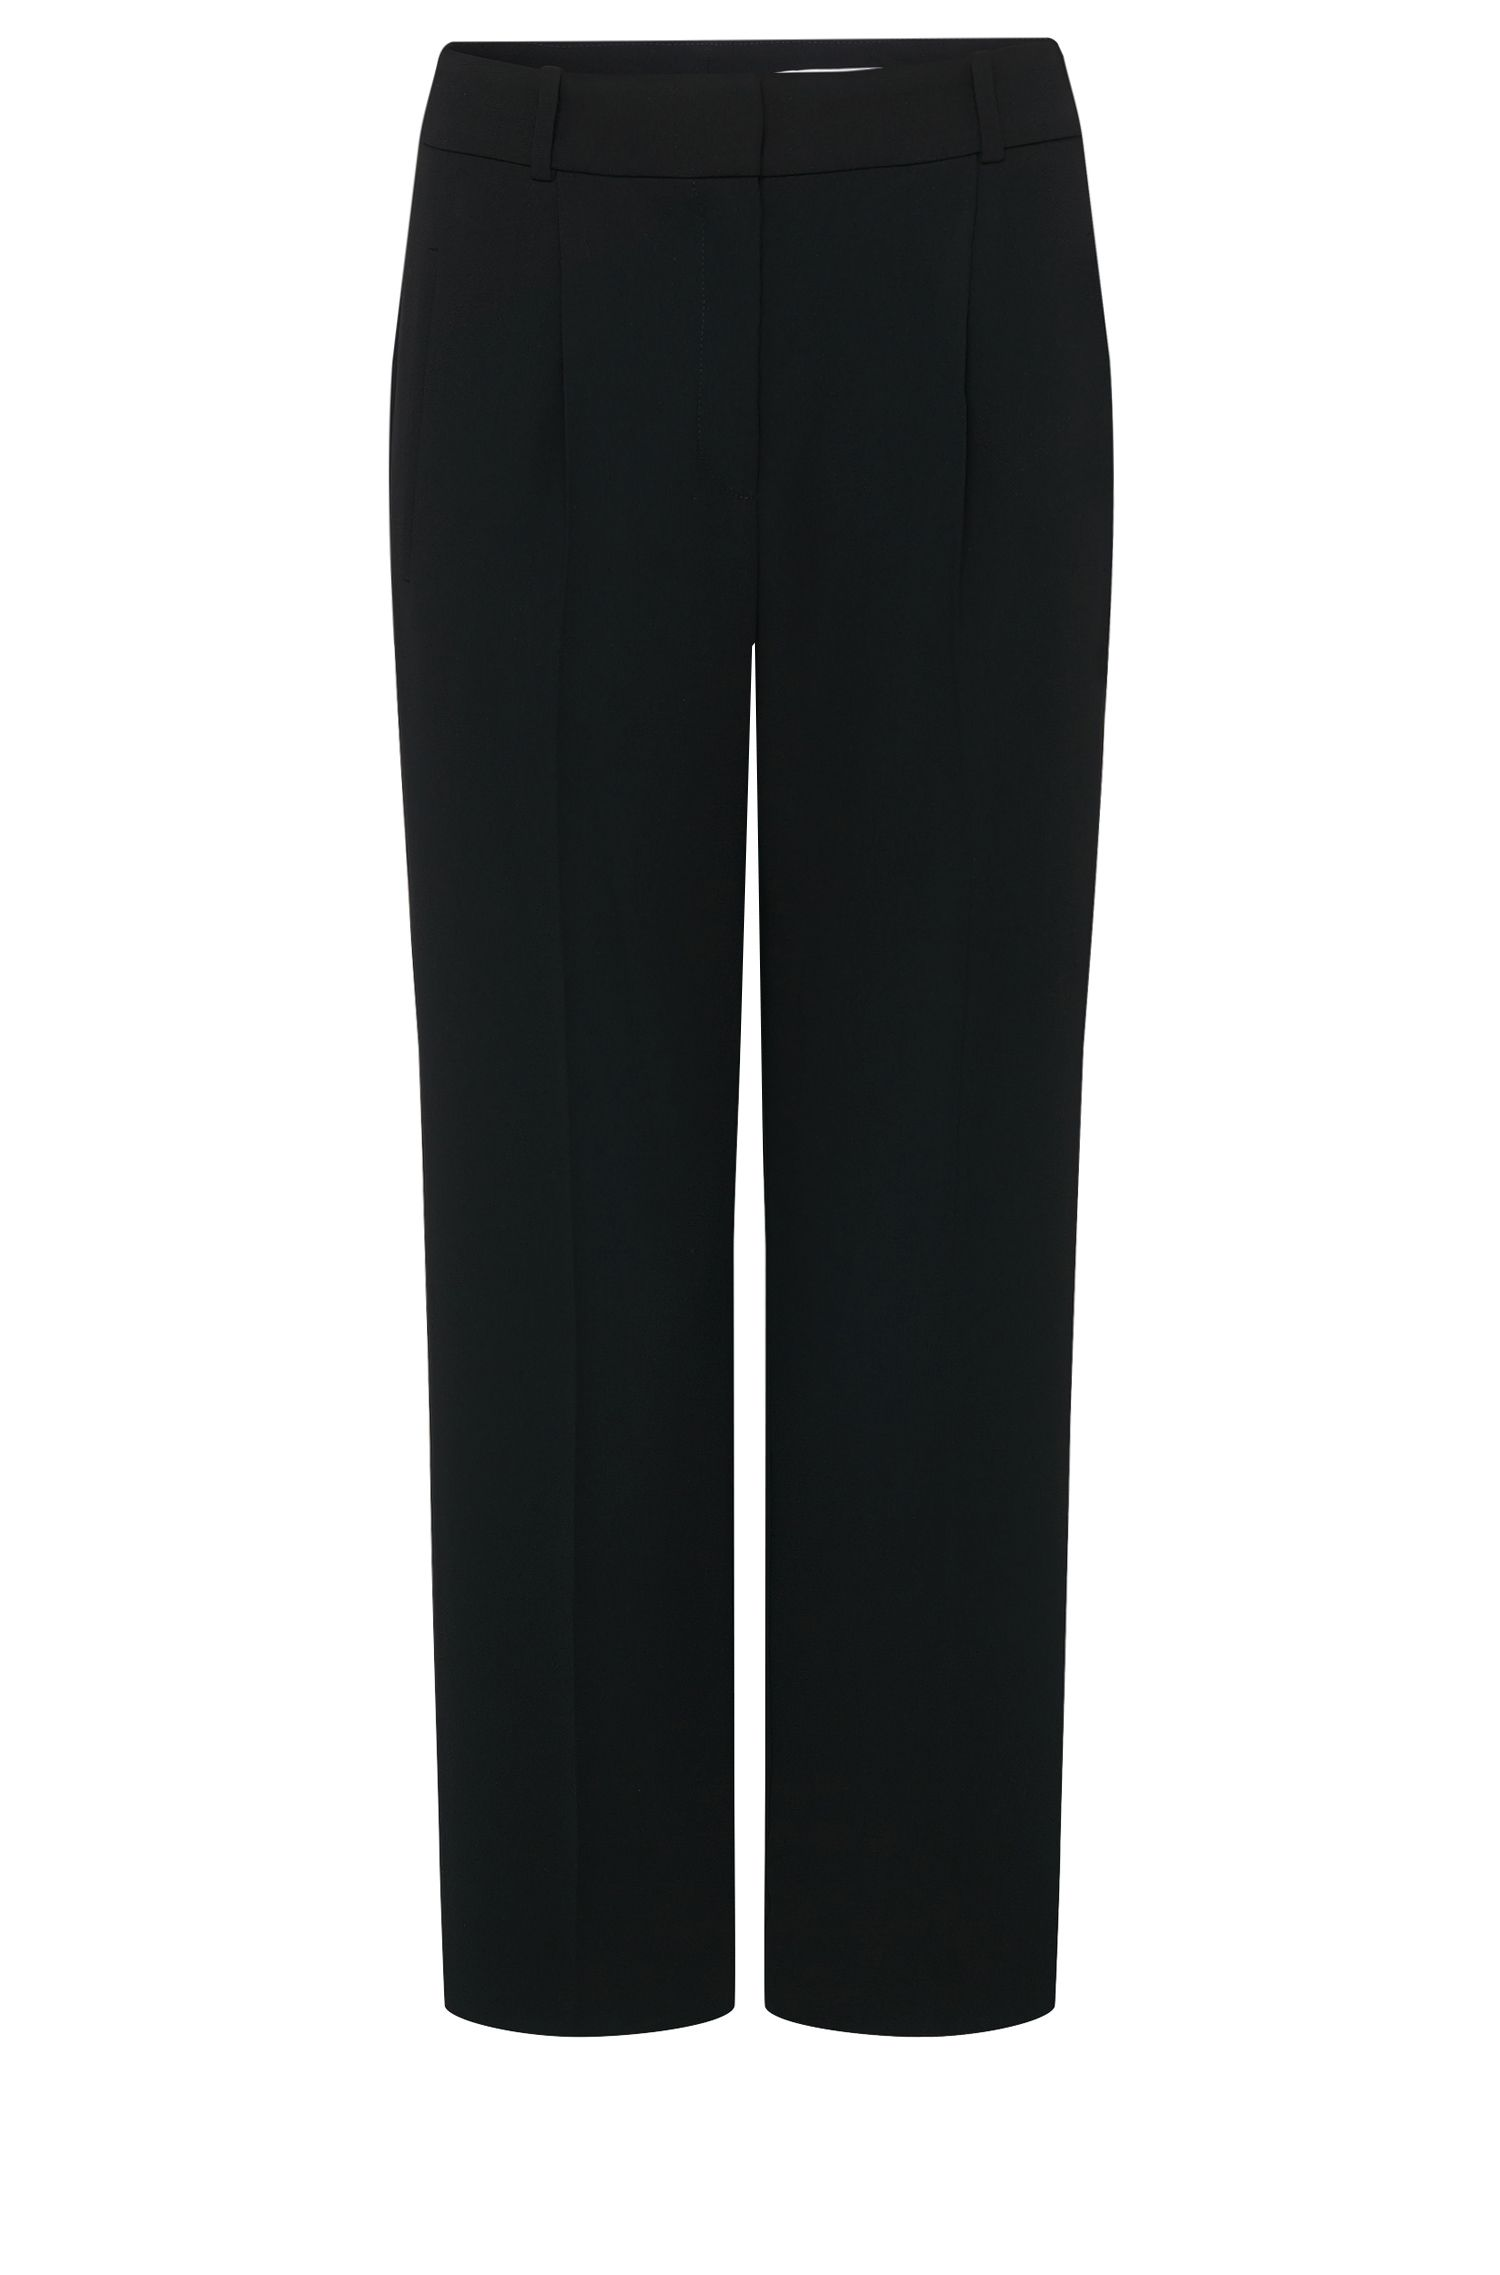 'Alami' | Crepe Wide Leg Pants